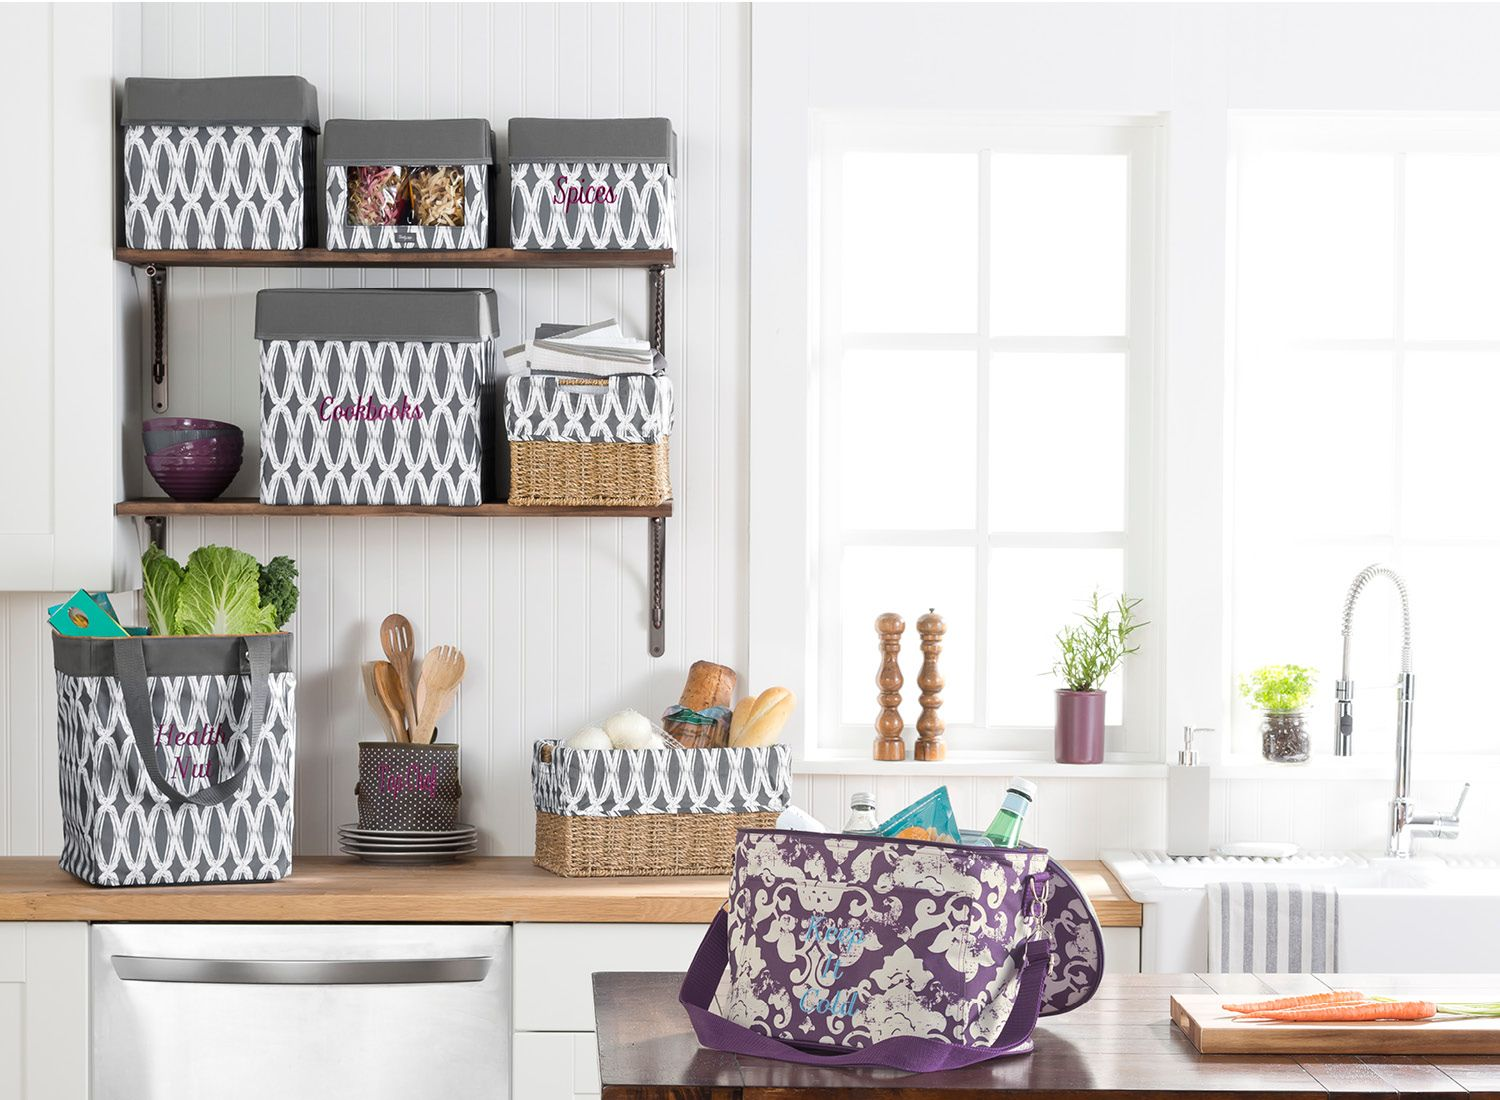 Thirty One Gifts Kitchen Organization Use Your Way